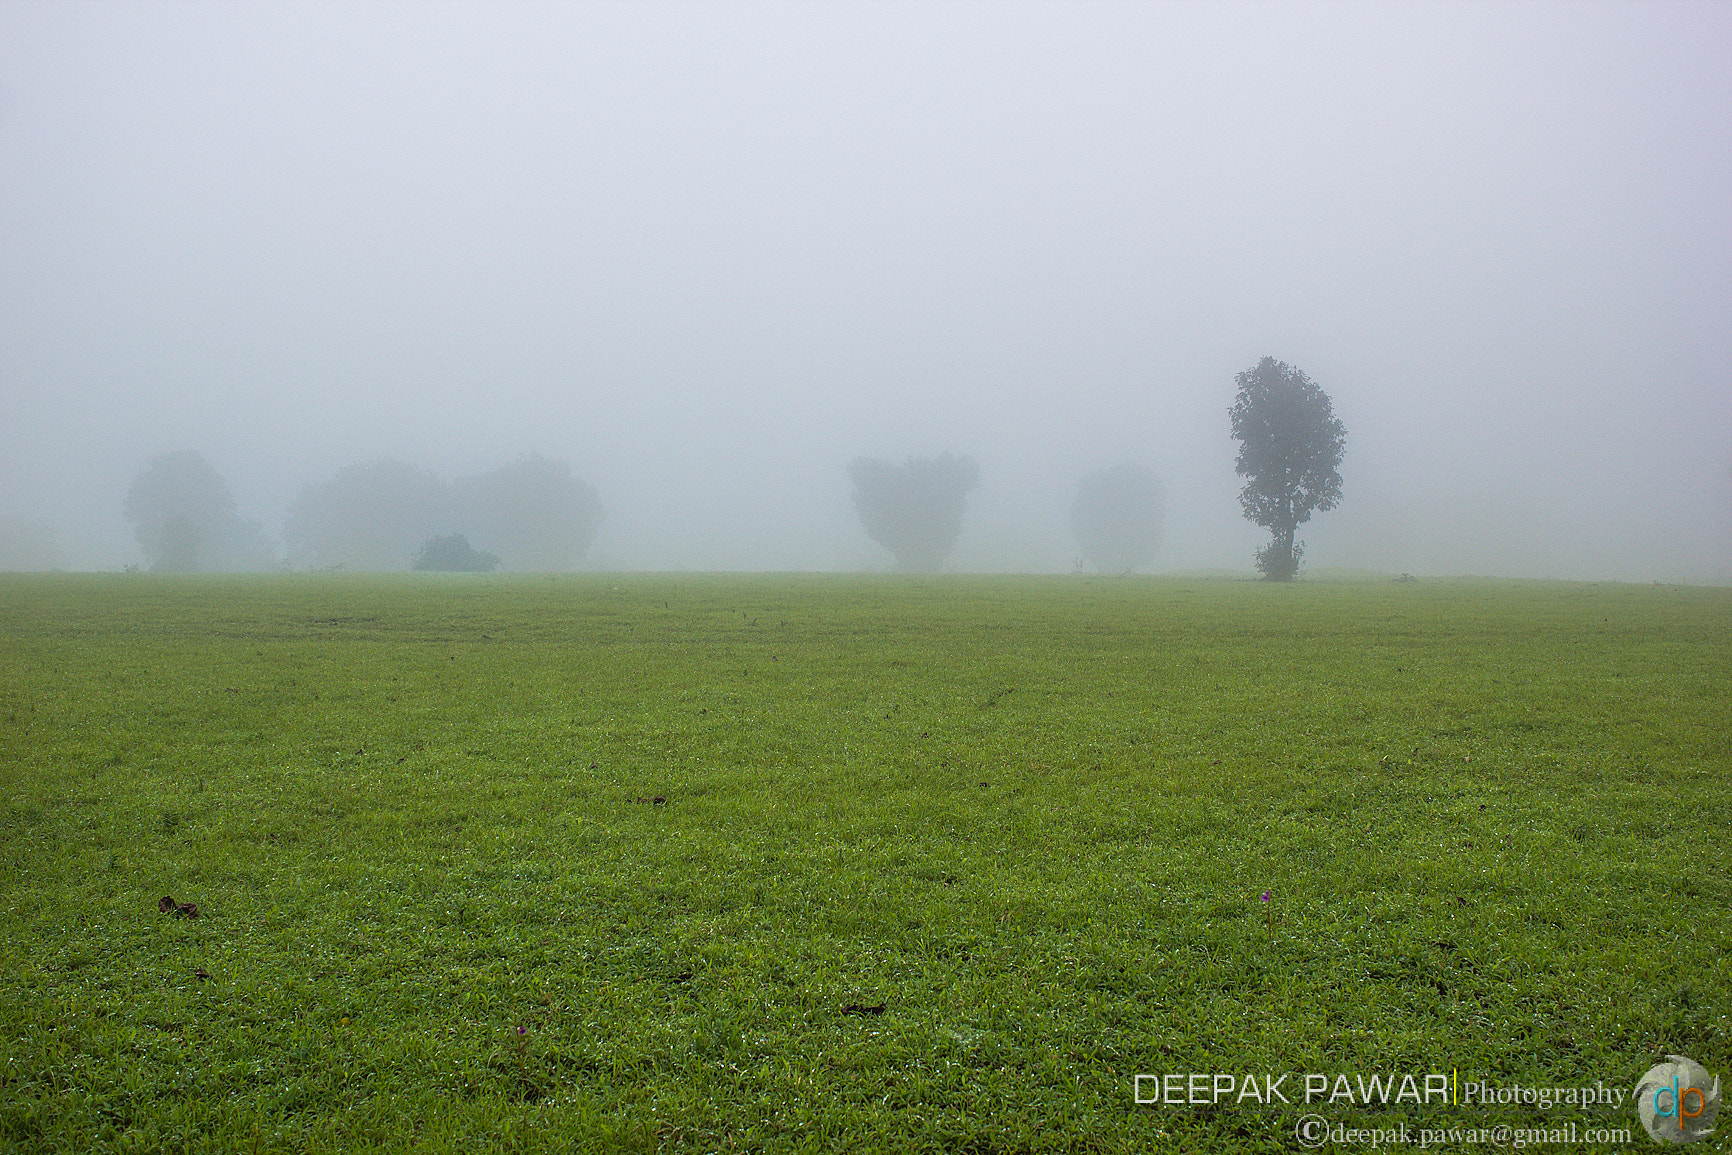 Photograph Trees in the mist by Deepak Pawar on 500px